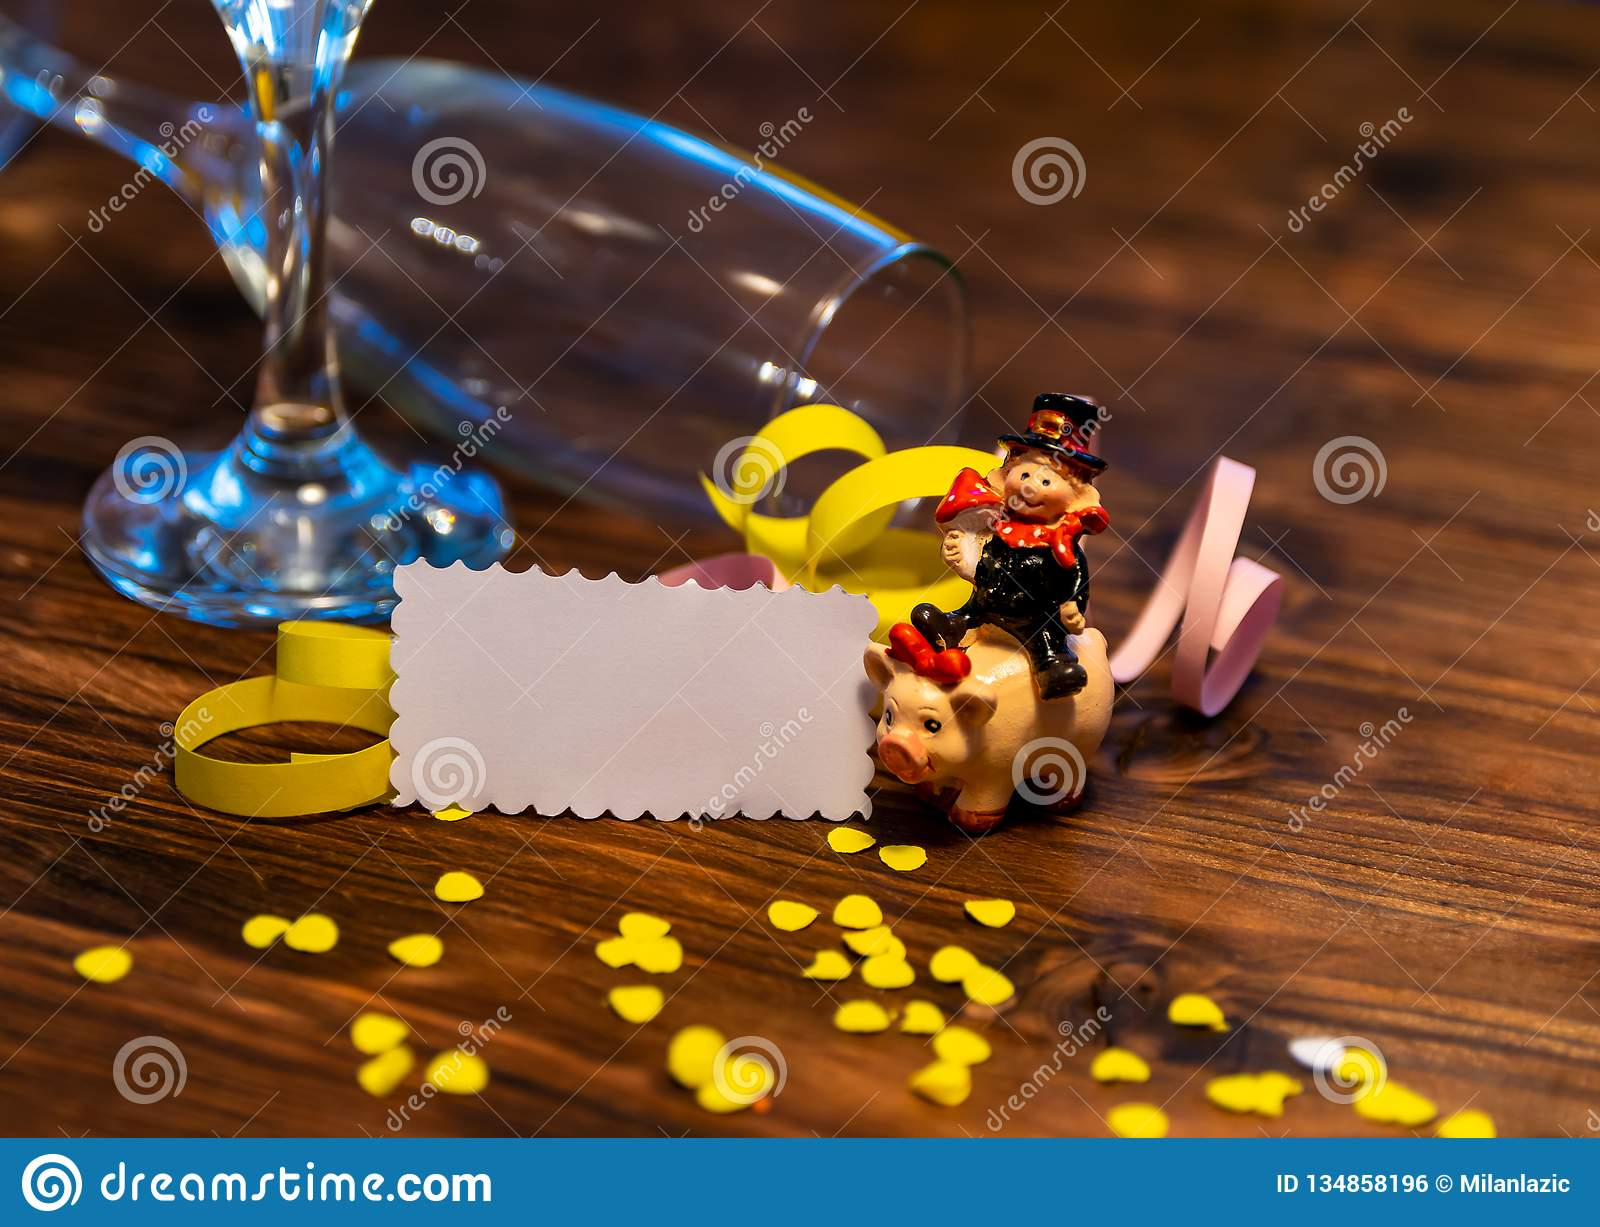 A lucky charm on New Year`s Eve. A chimney sweep on a pig with confetti, paper and champagne glasses